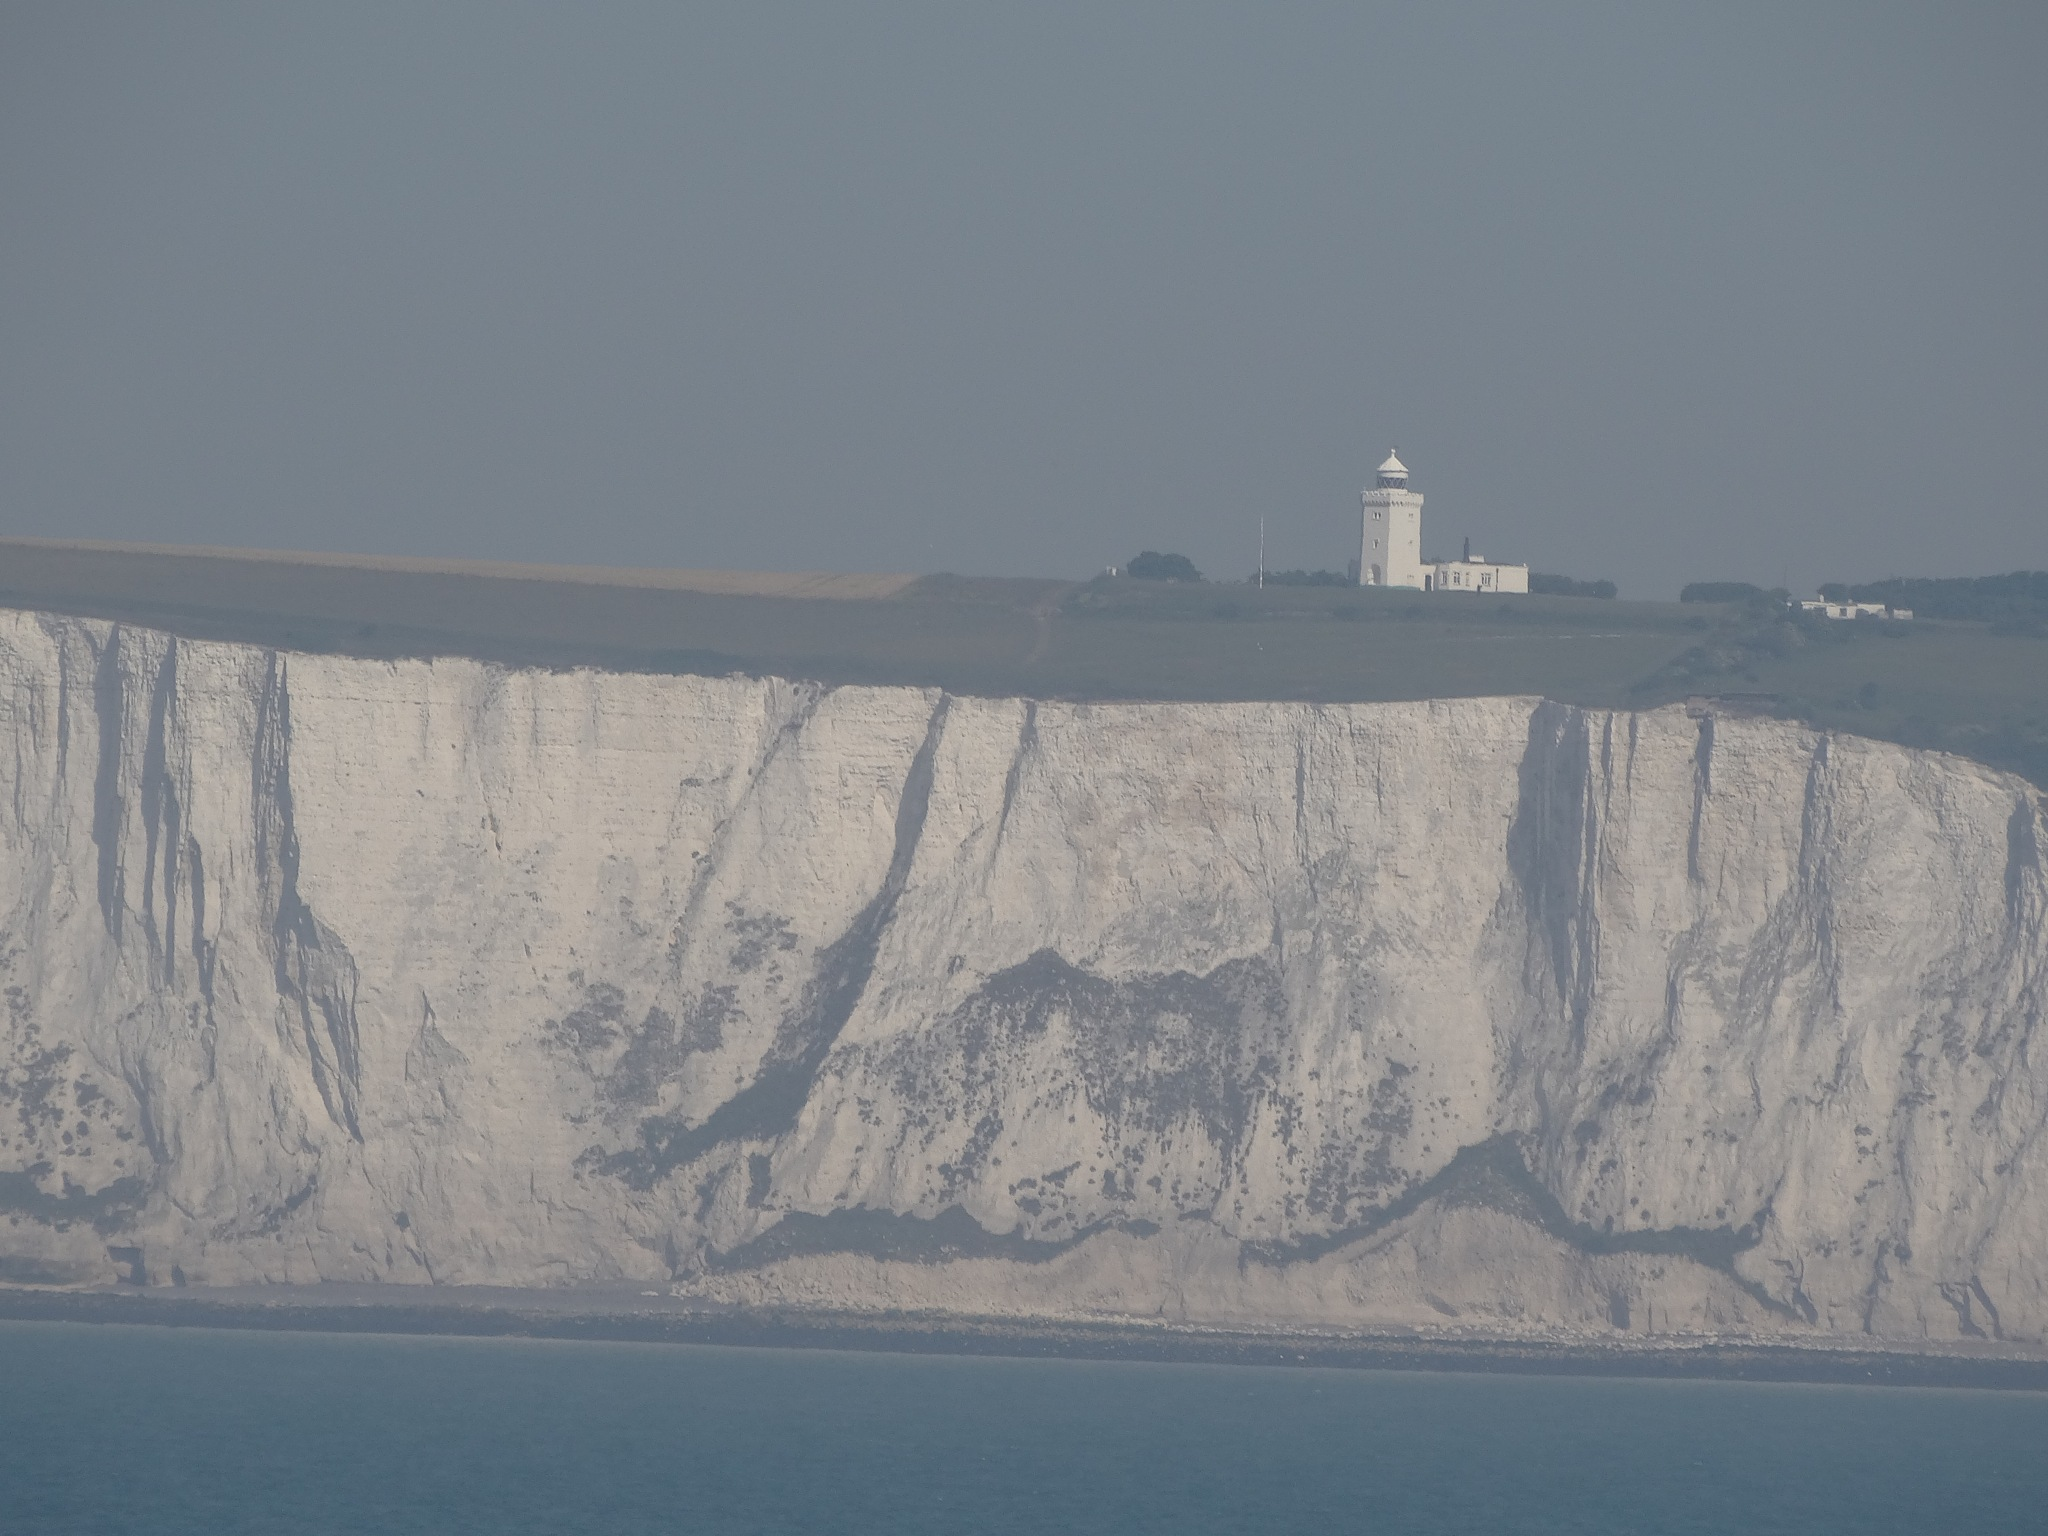 The white cliffs of Dover by Hanno van Erkel